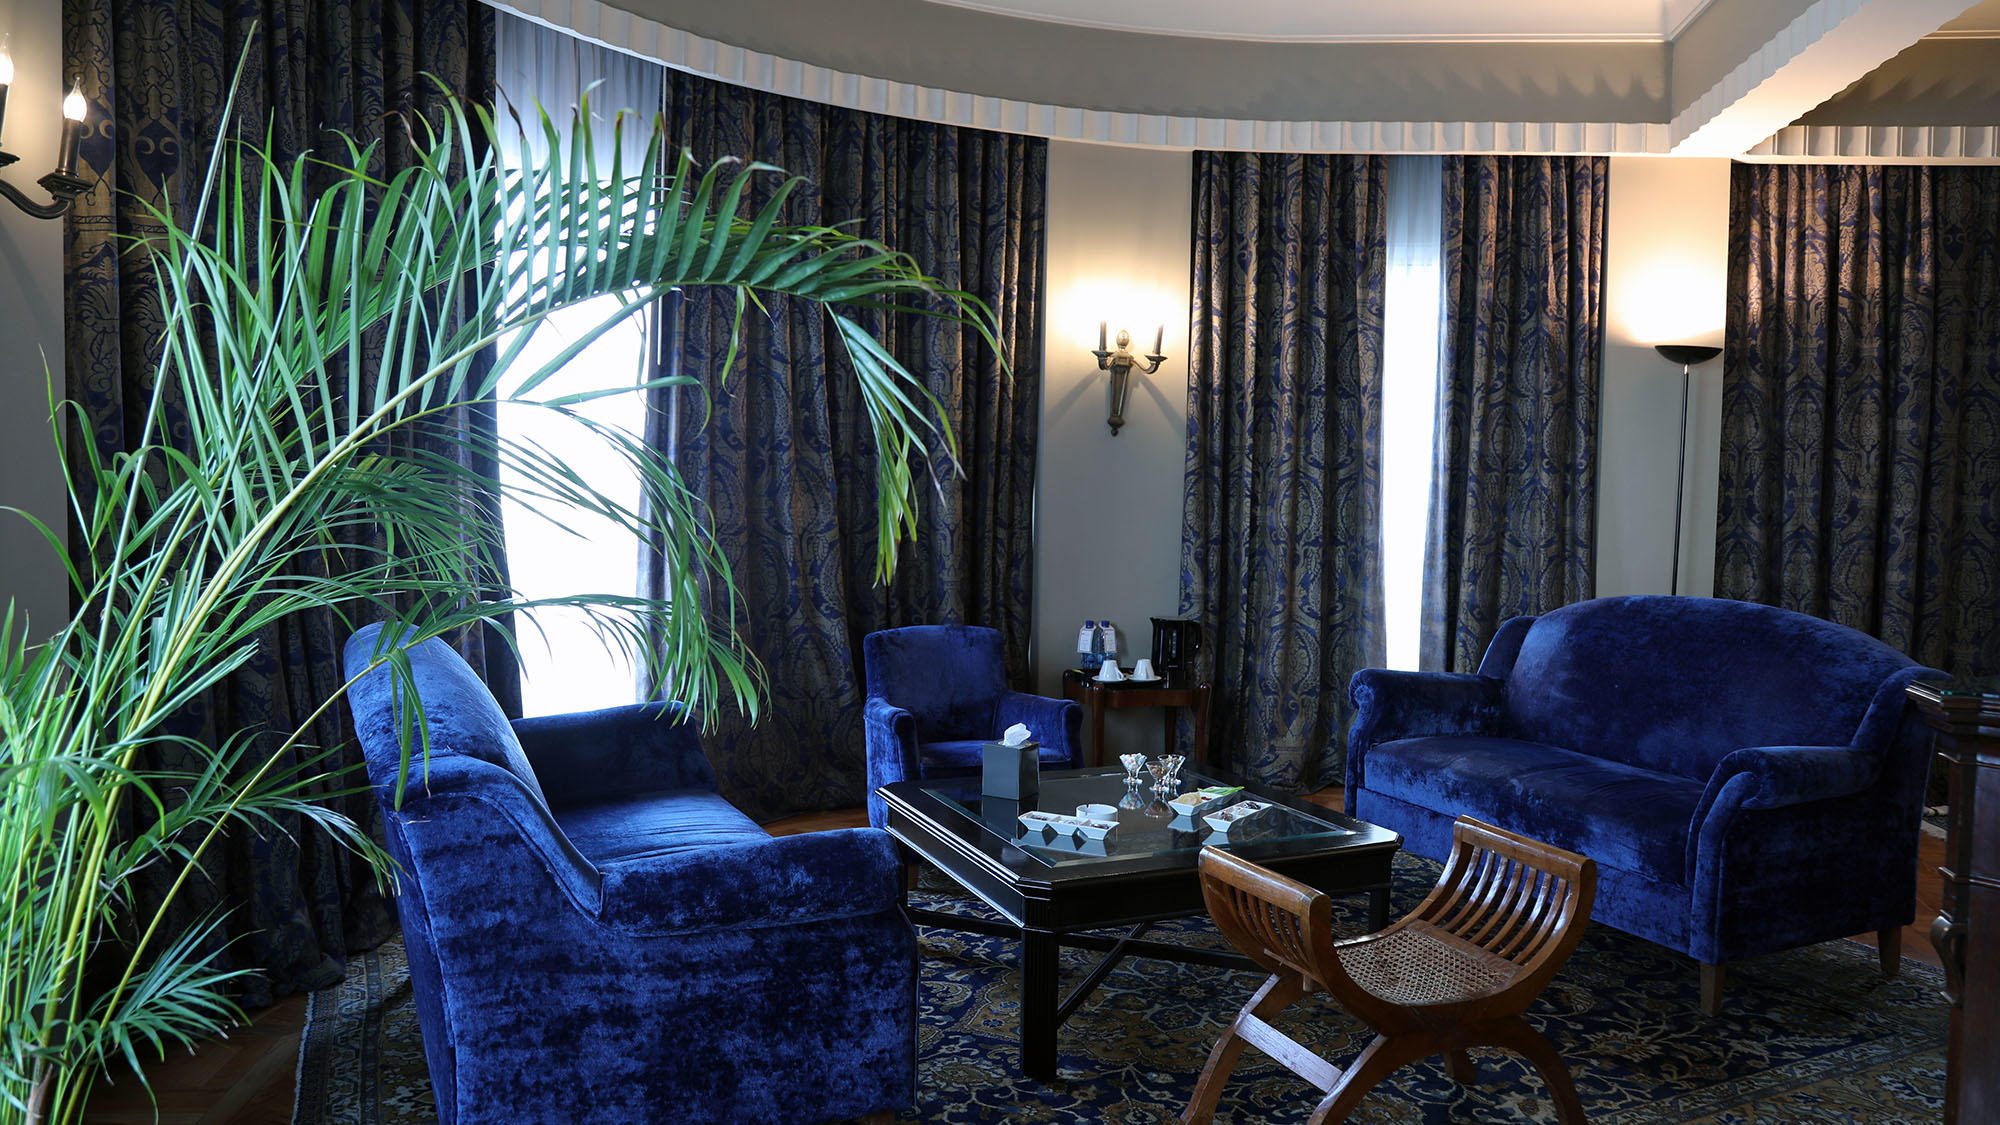 Executive Suite Living Room with blue seats